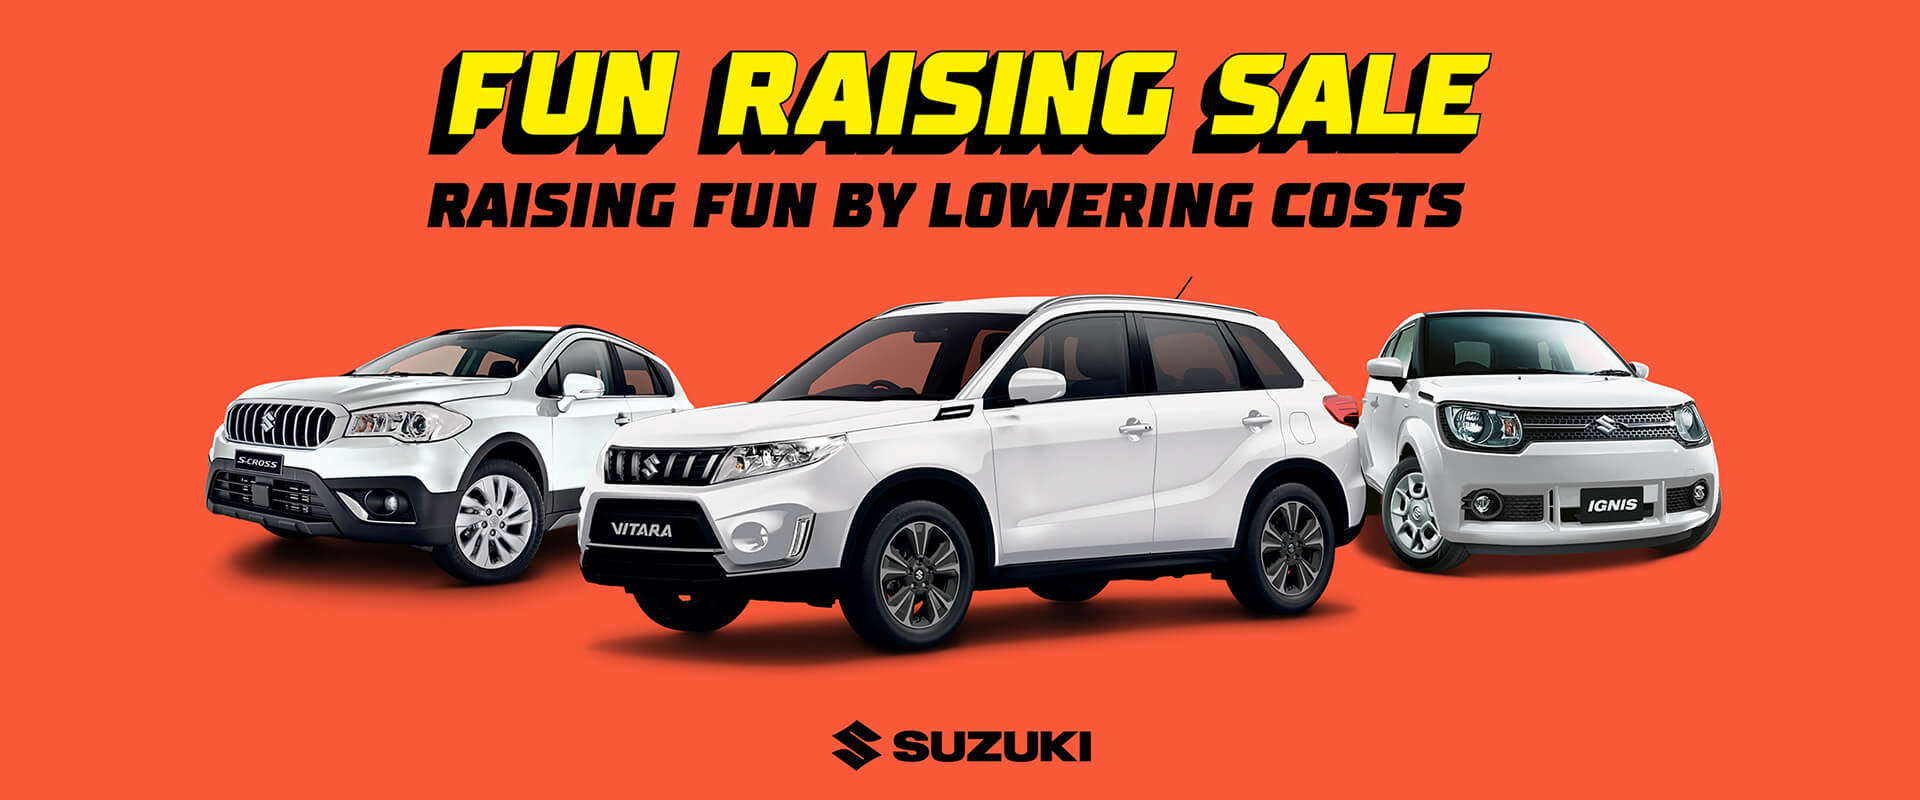 Fun Raising Sale